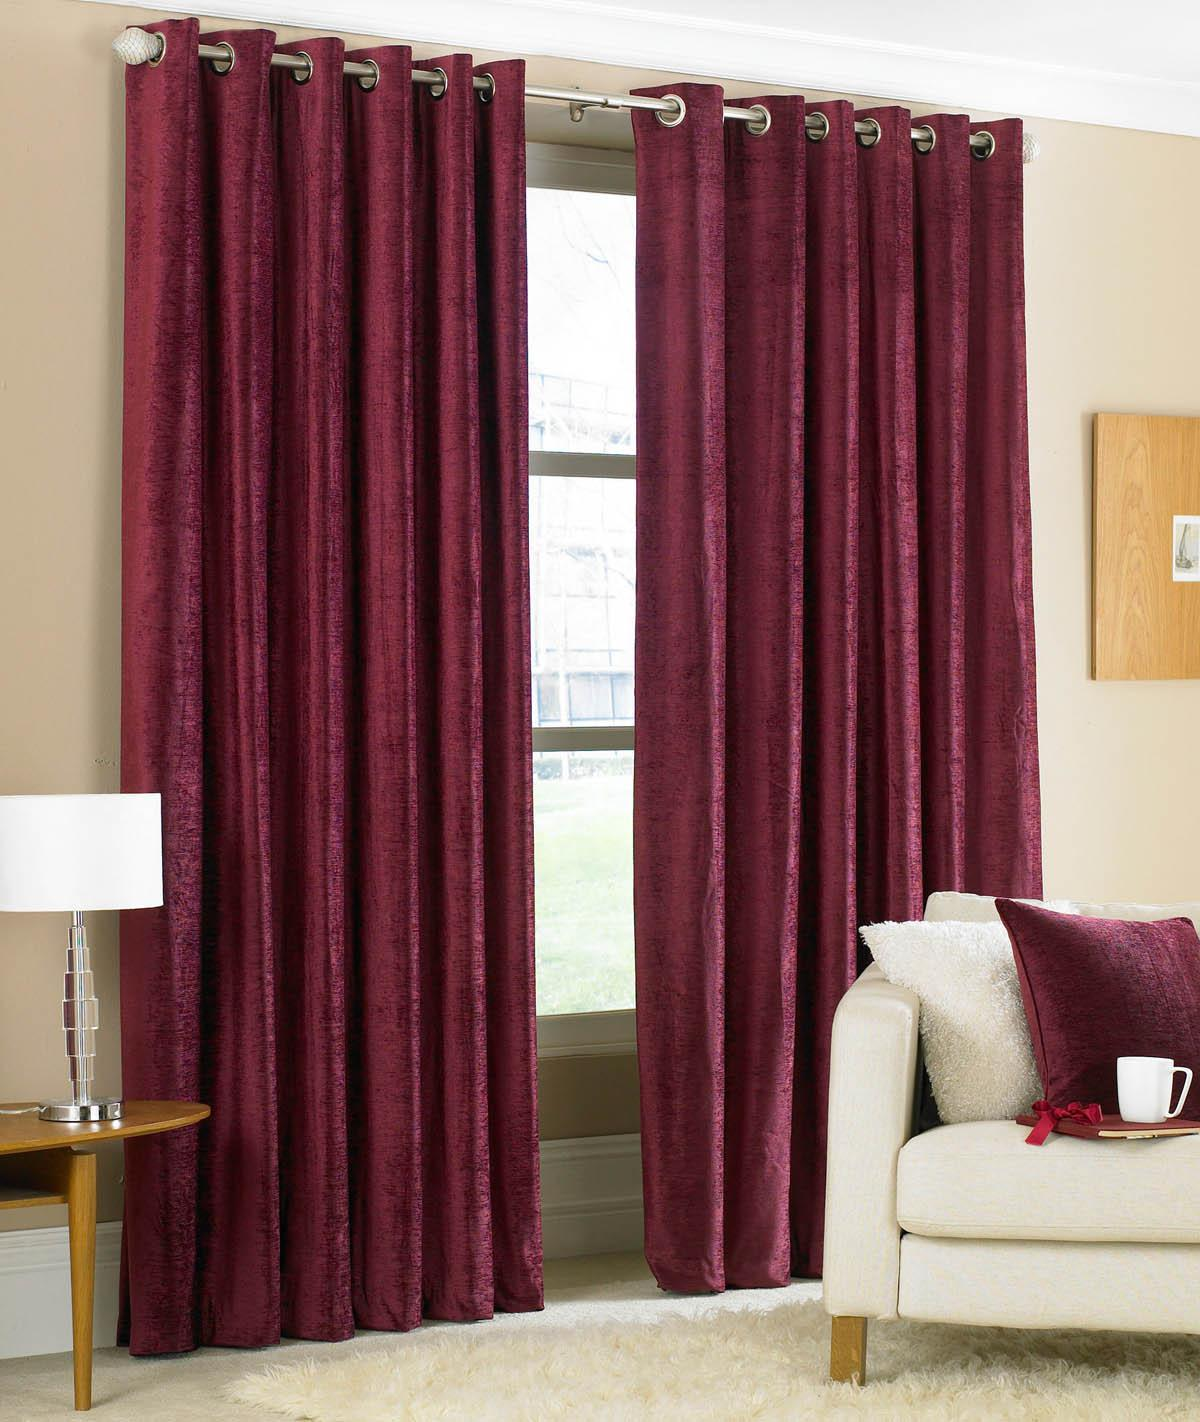 Ready Made Curtains Online Ready Made Curtains Shop For Cheap Curtains And Blinds And